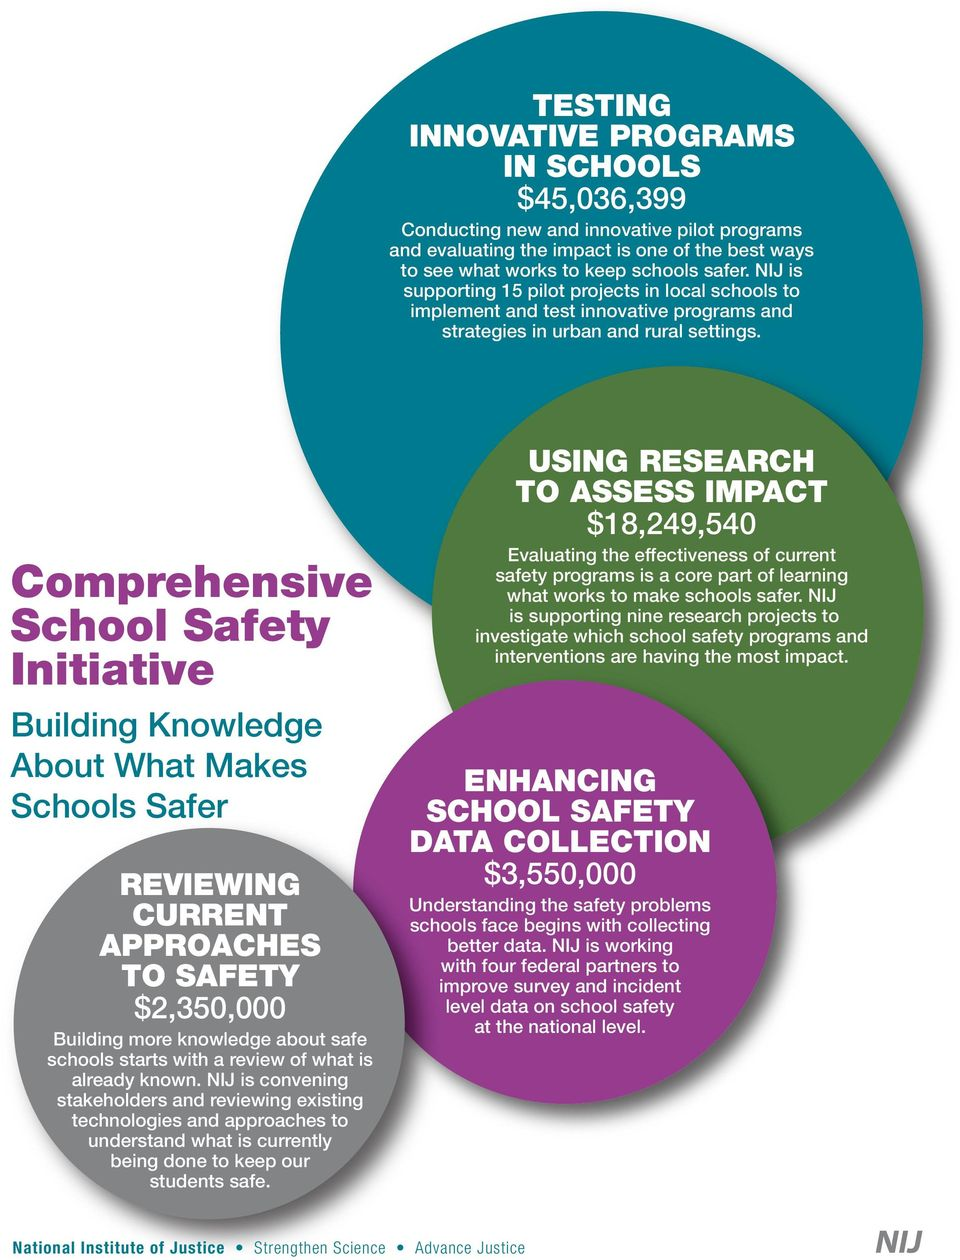 USING RESEARCH TO ASSESS IMPACT $18,249,540 Comprehensive School Safety Initiative Building Knowledge About What Makes Schools Safer REVIEWING CURRENT APPROACHES TO SAFETY $2,350,000 Building more